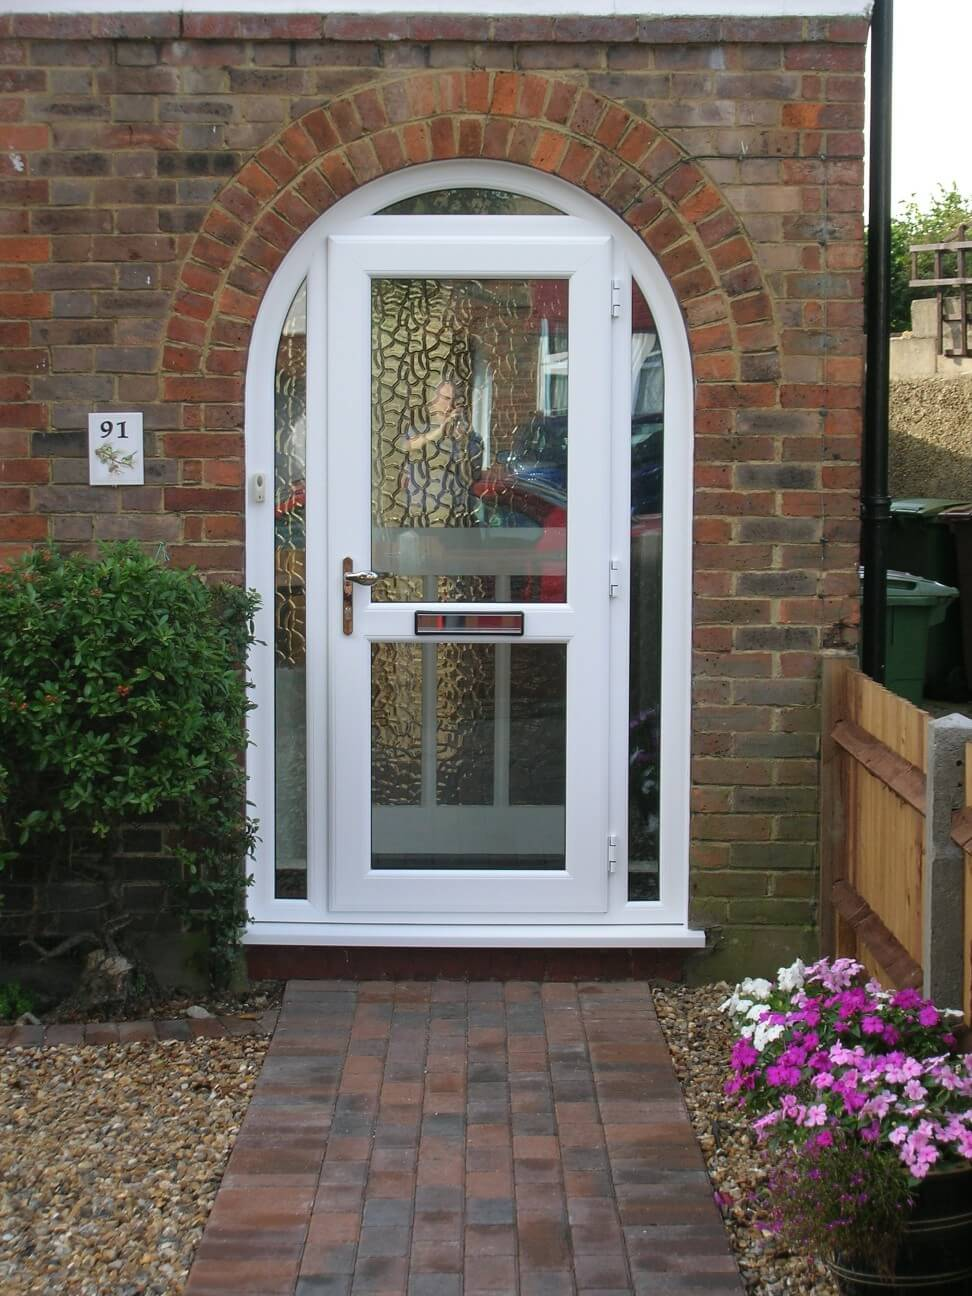 Upvc doors sutton front doors double glazed doors london - Upvc double front exterior doors ...